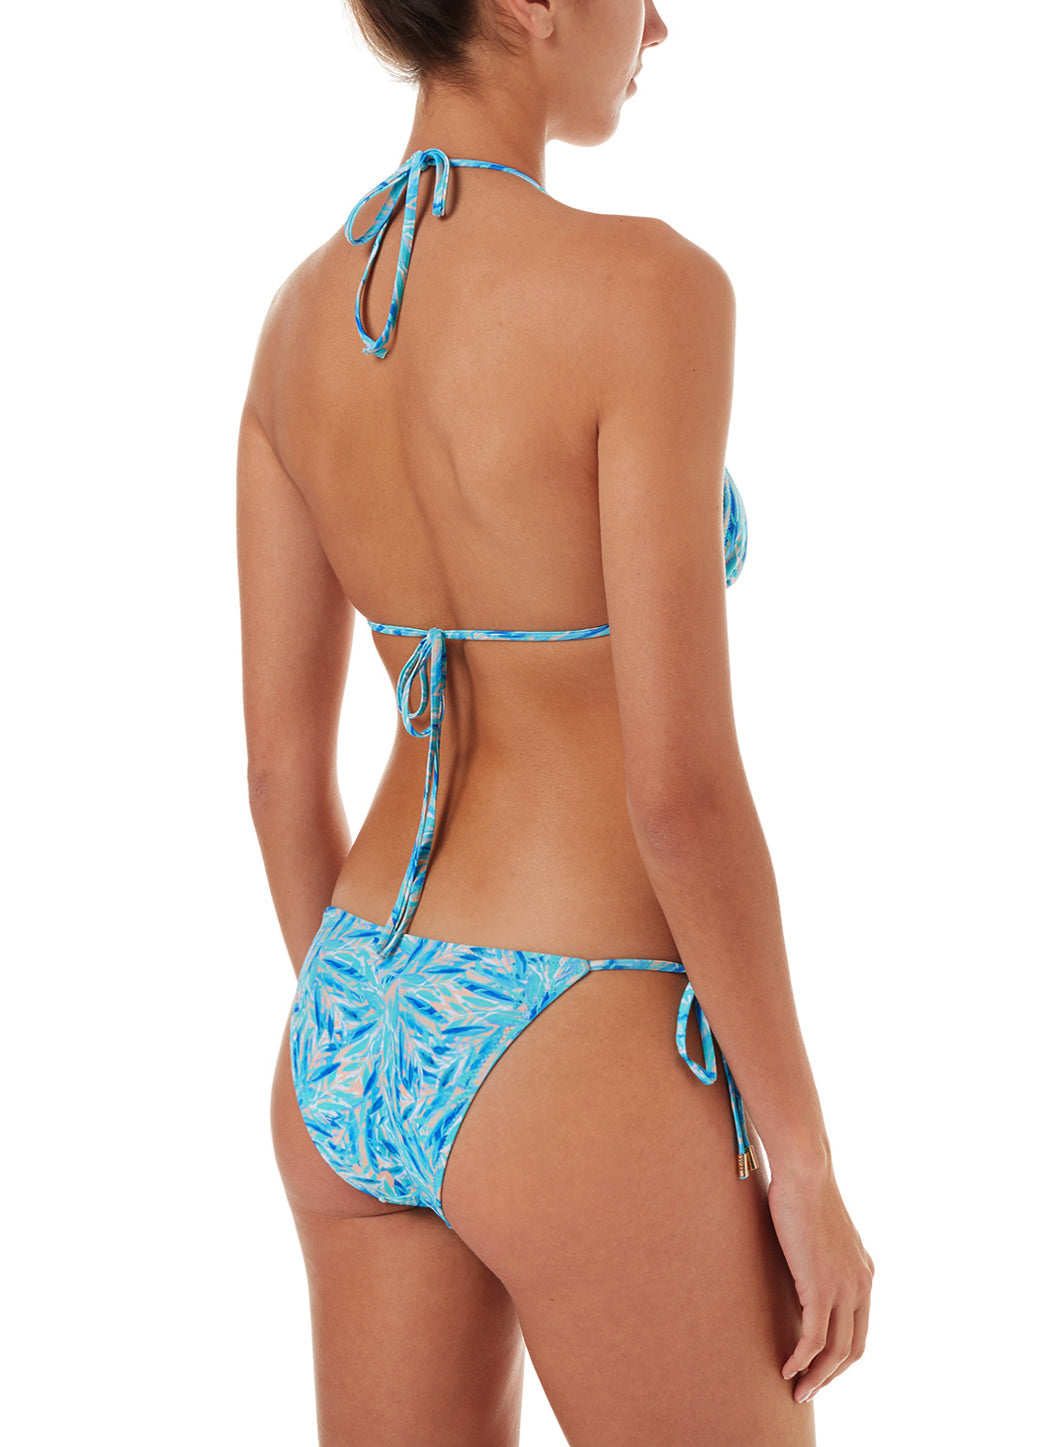 Miami Blue Leaf Triangle Ring Bikini